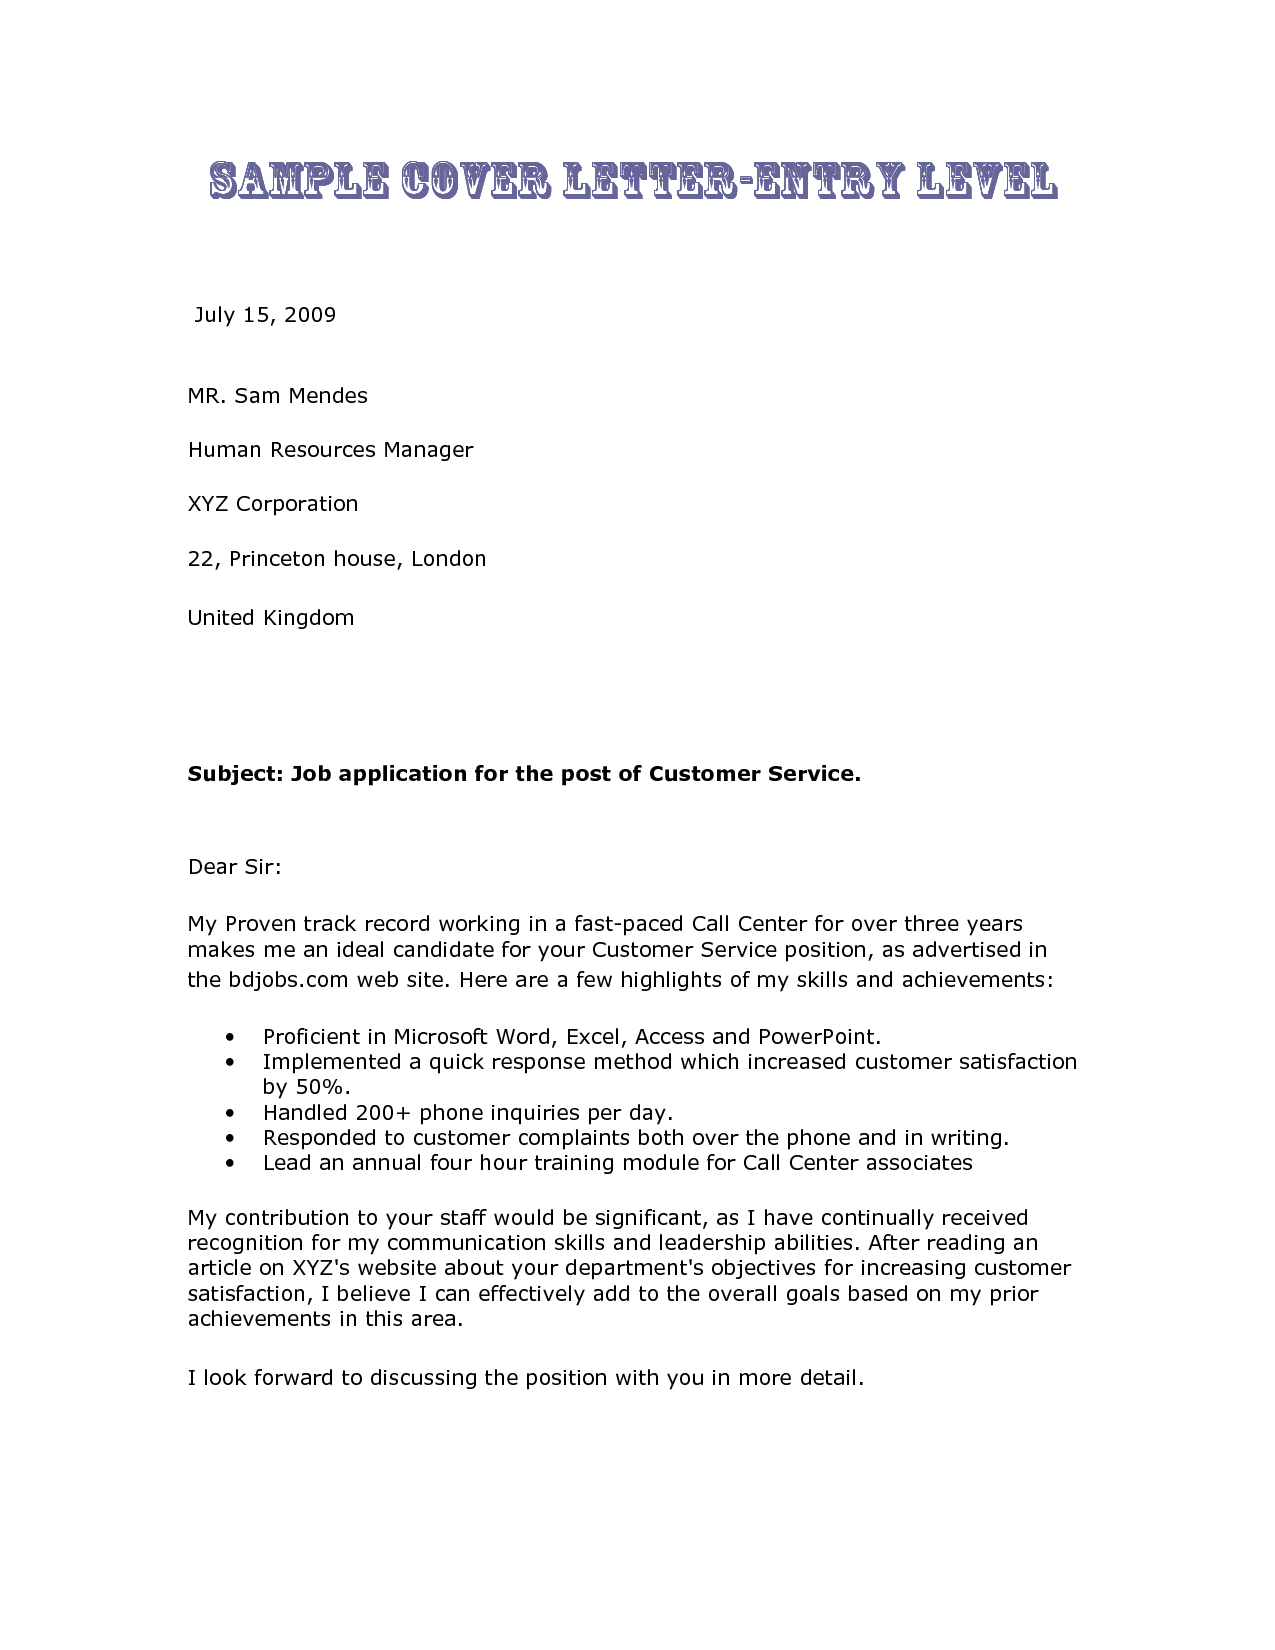 Princeton Bill Template and Sample Cover Letter for Food Service Resume Sample